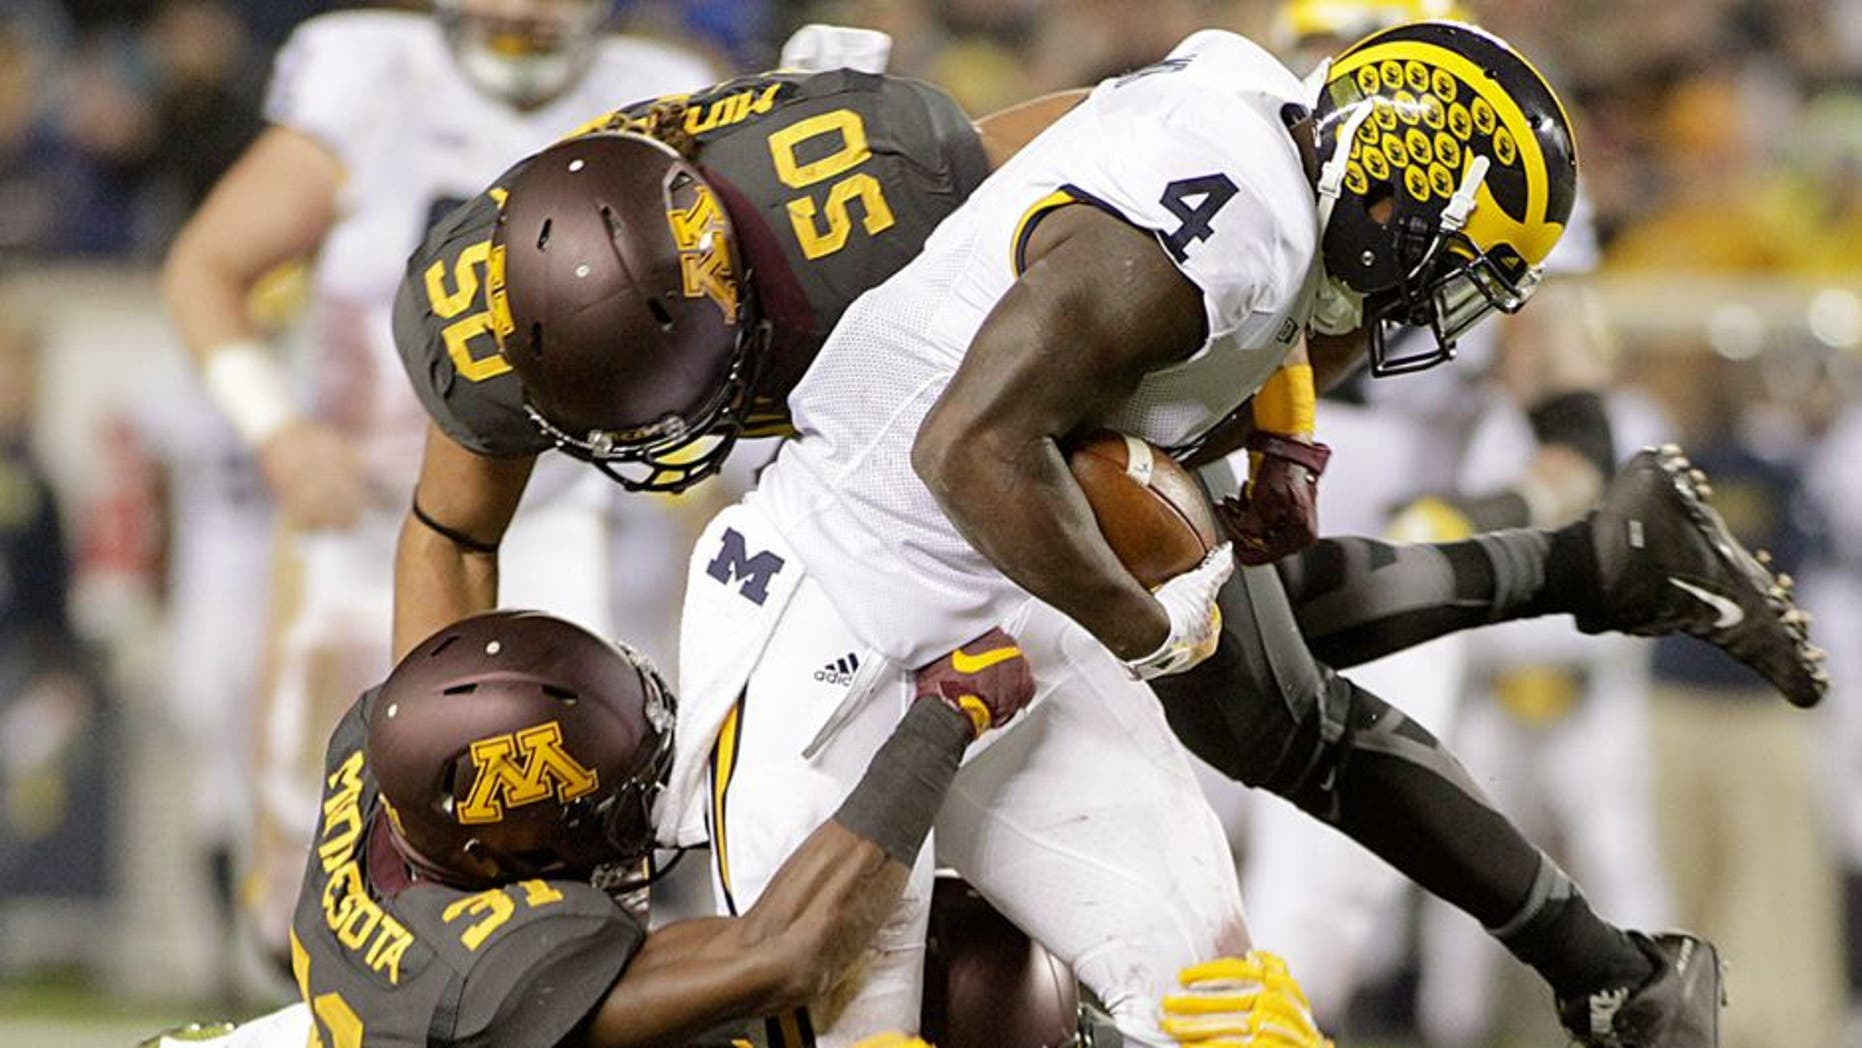 Michigan running back De'Veon Smith (4) is tackled by Minnesota's Eric Murray (31) and Jack Lynn (50) after a 15 yard catch and run during the first half of an NCAA college football game Saturday, Oct. 31, 2015, in Minneapolis.(AP Photo/Paul Battaglia)